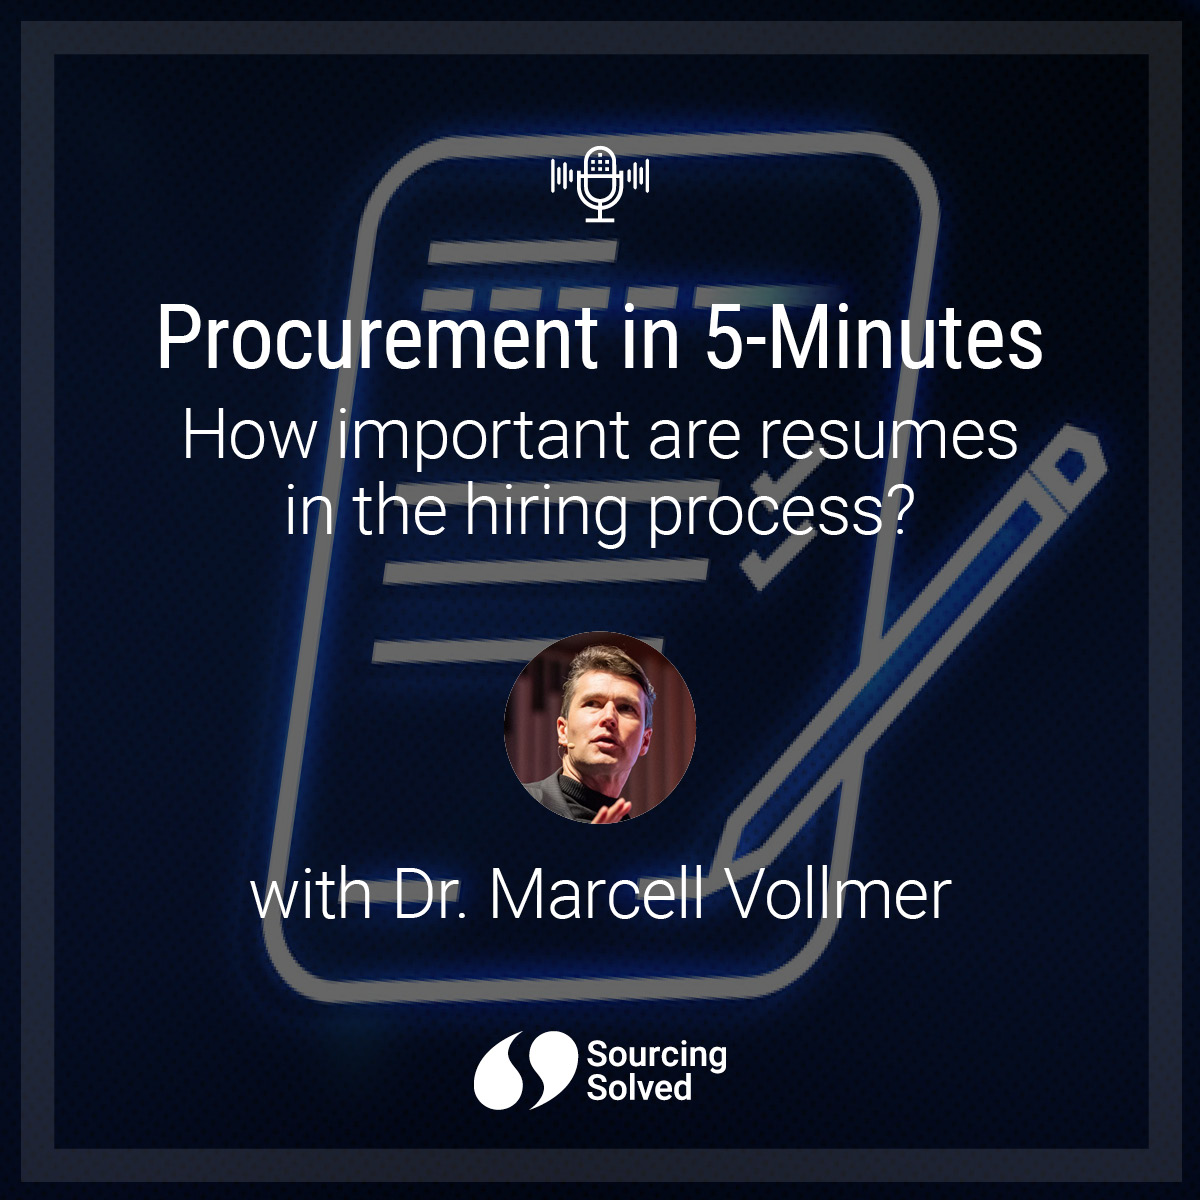 Procurement in 5-Minutes: How important are resumes in the hiring process?